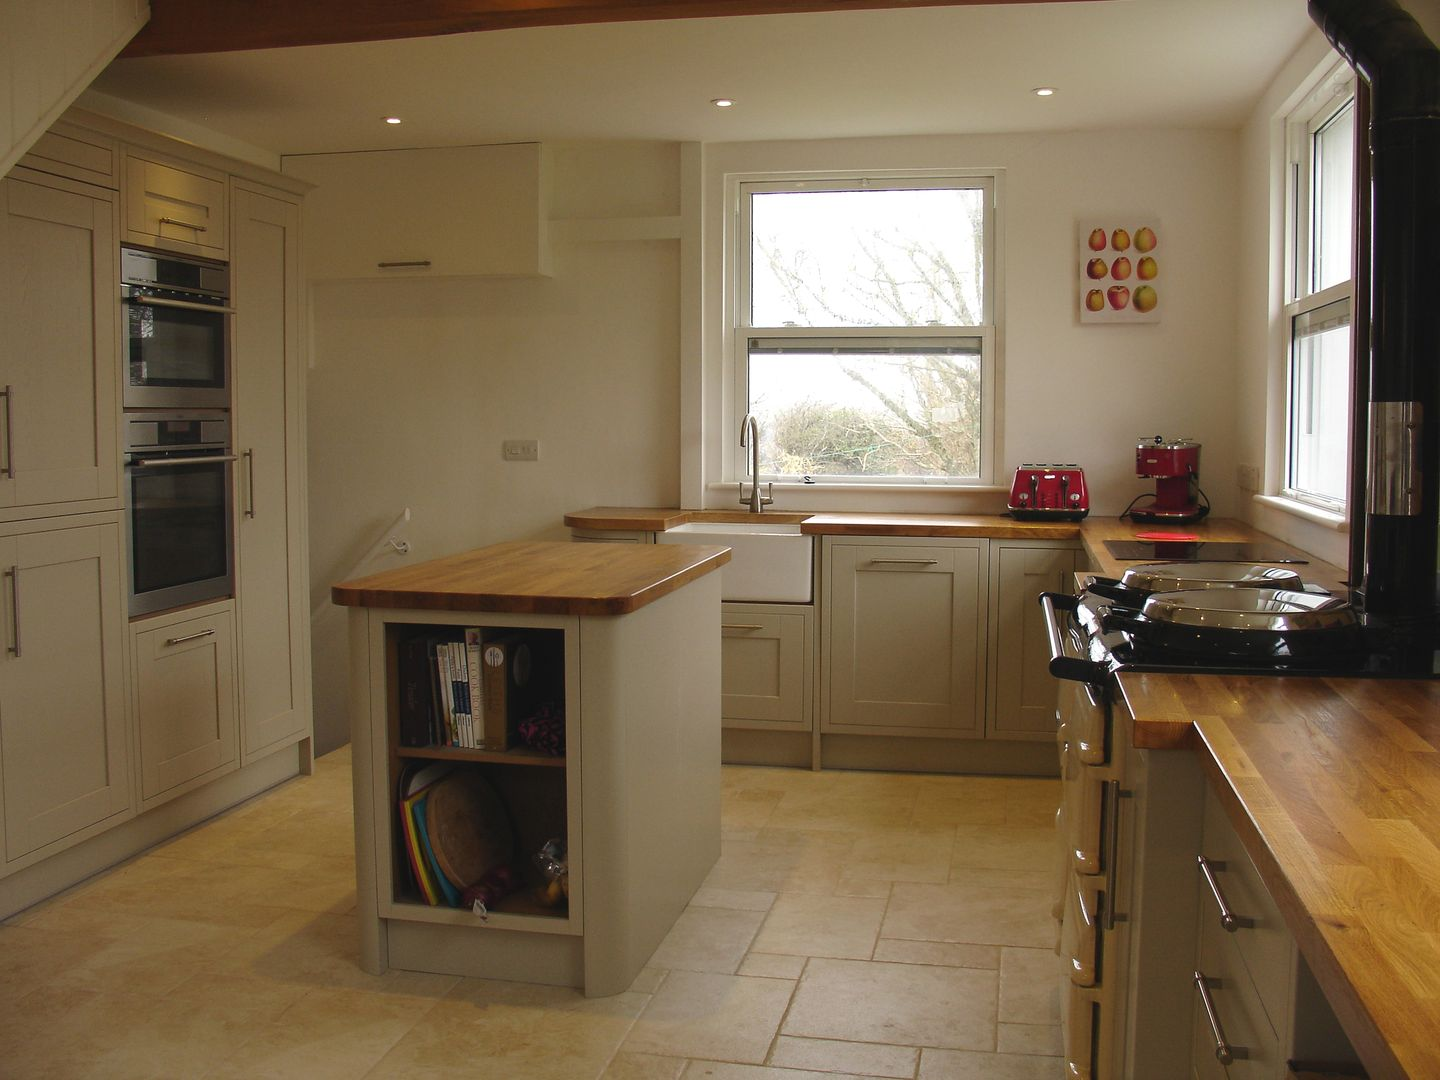 Ley Park Welcombe Kitchen Overview